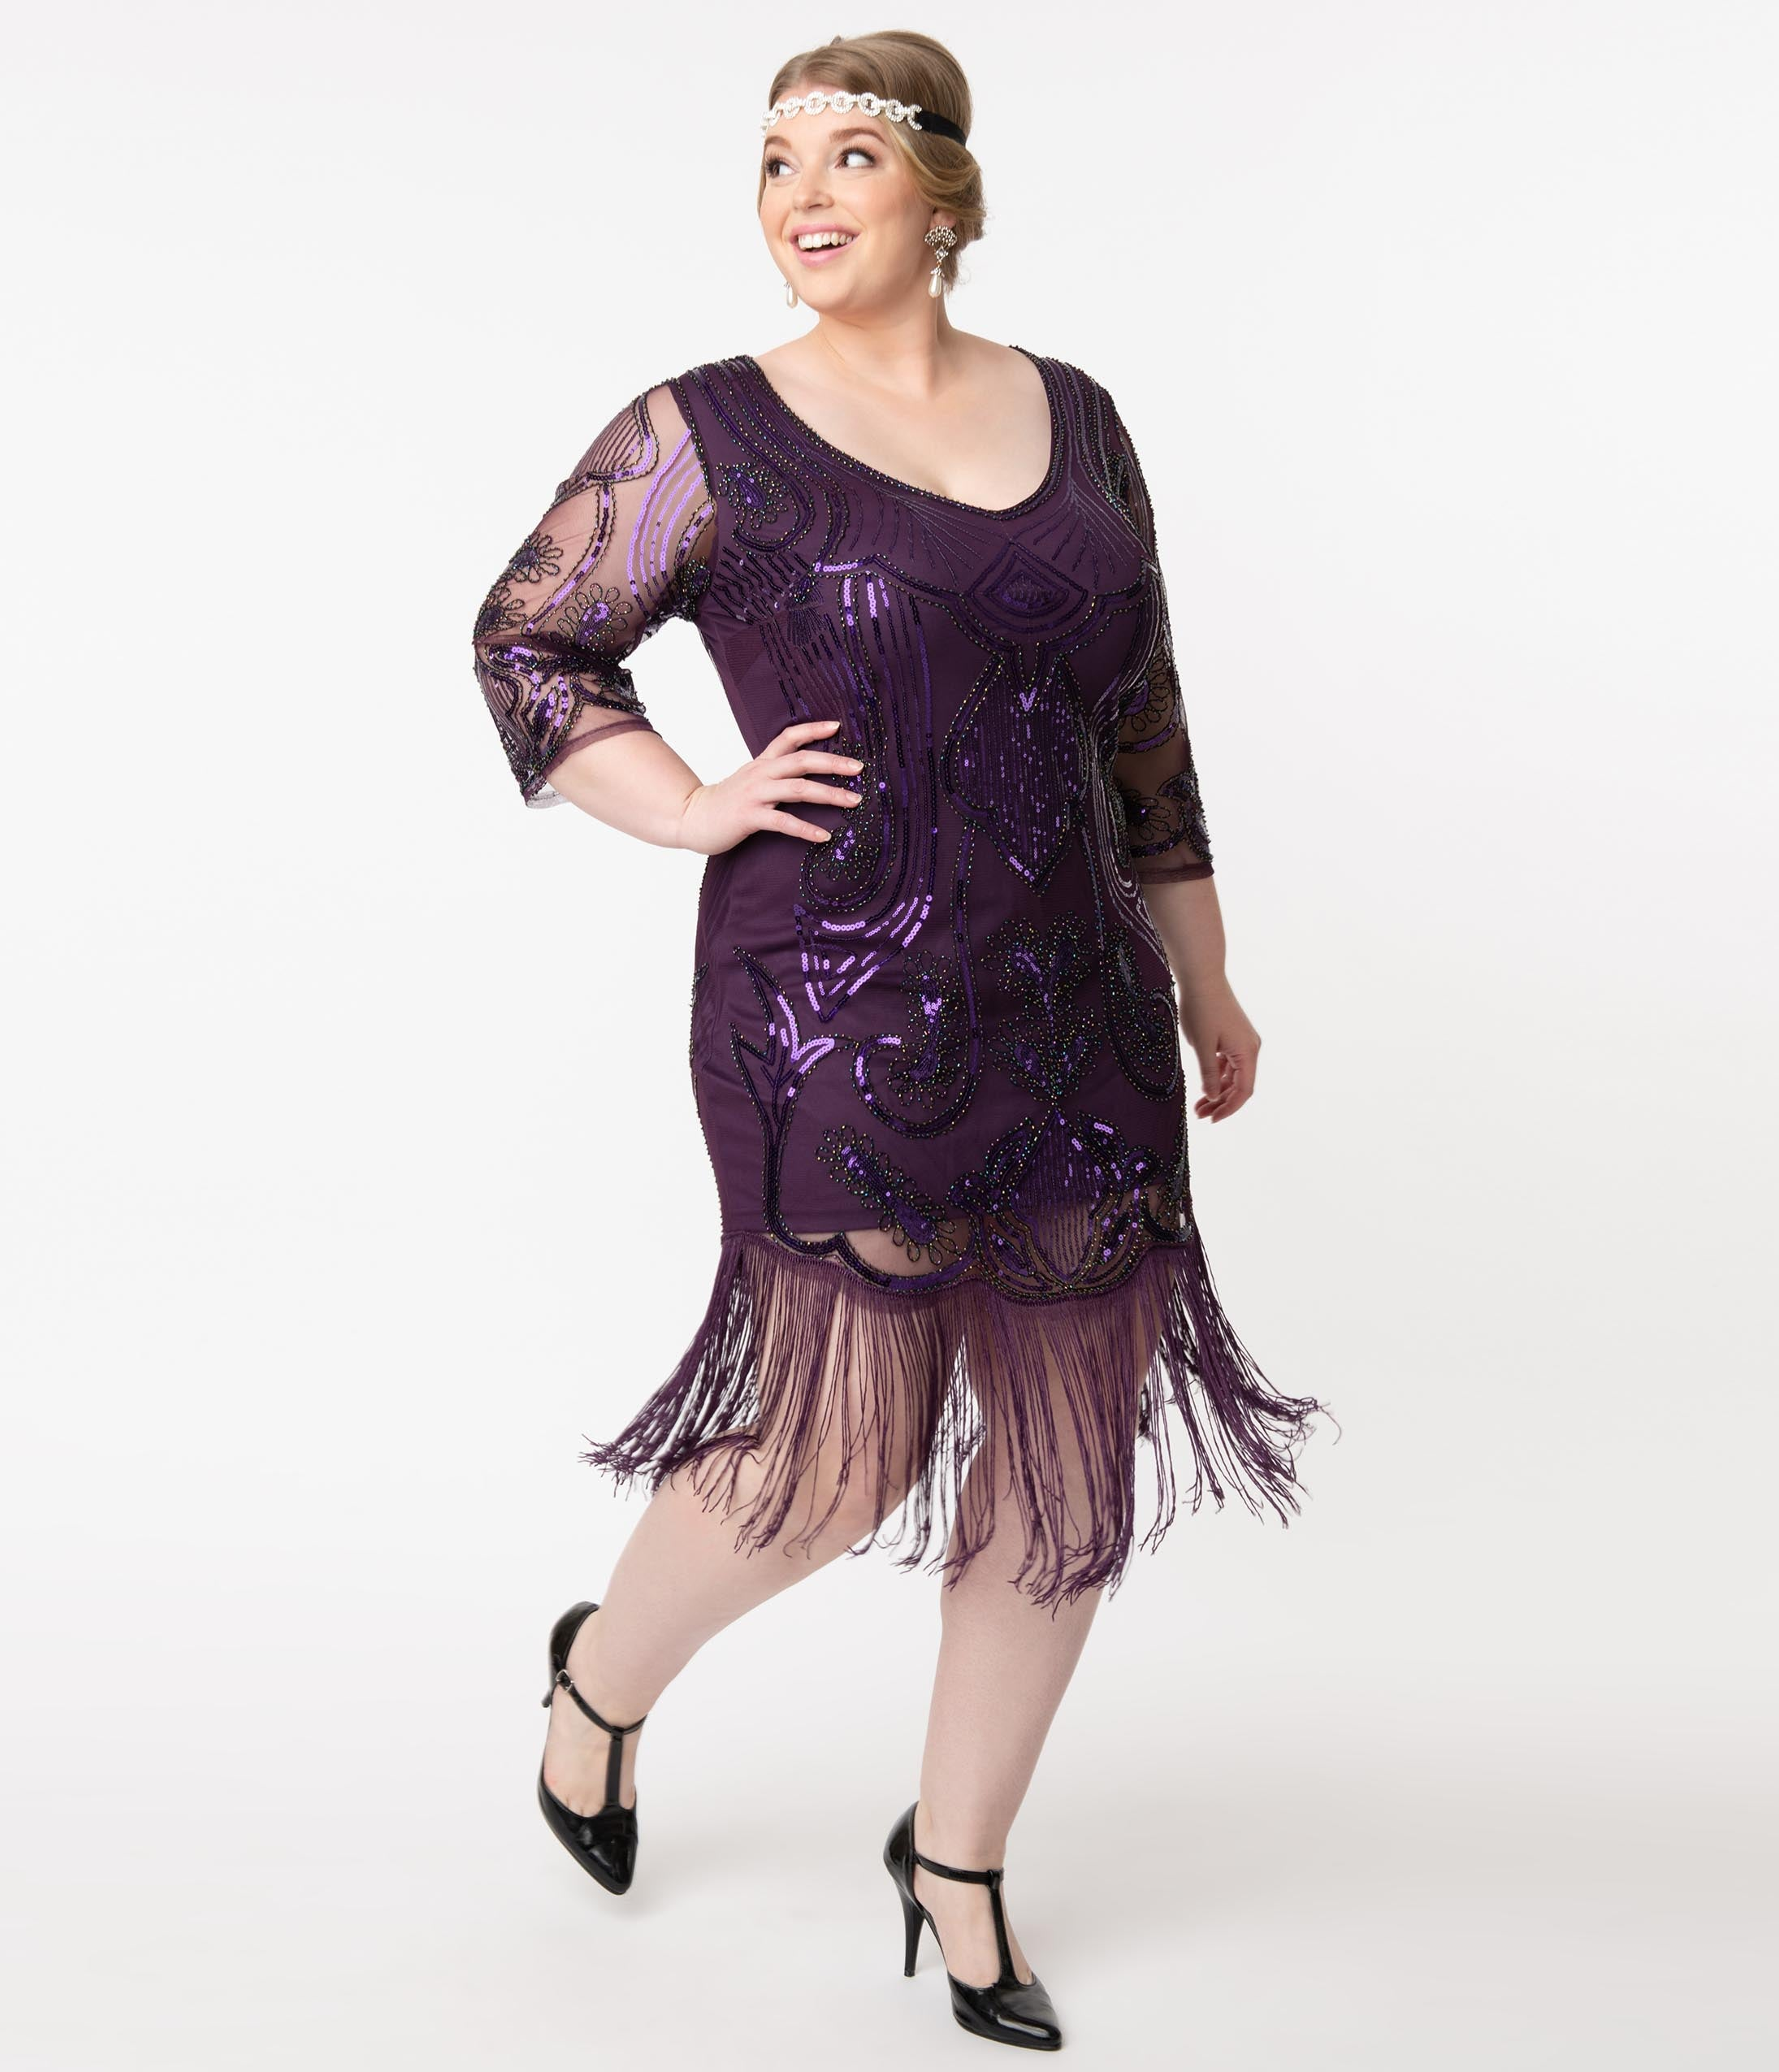 1920s Plus Size Flapper Dresses, Gatsby Dresses, Flapper Costumes Unique Vintage Plus Size Purple Sequin Margaux Flapper Dress $110.00 AT vintagedancer.com